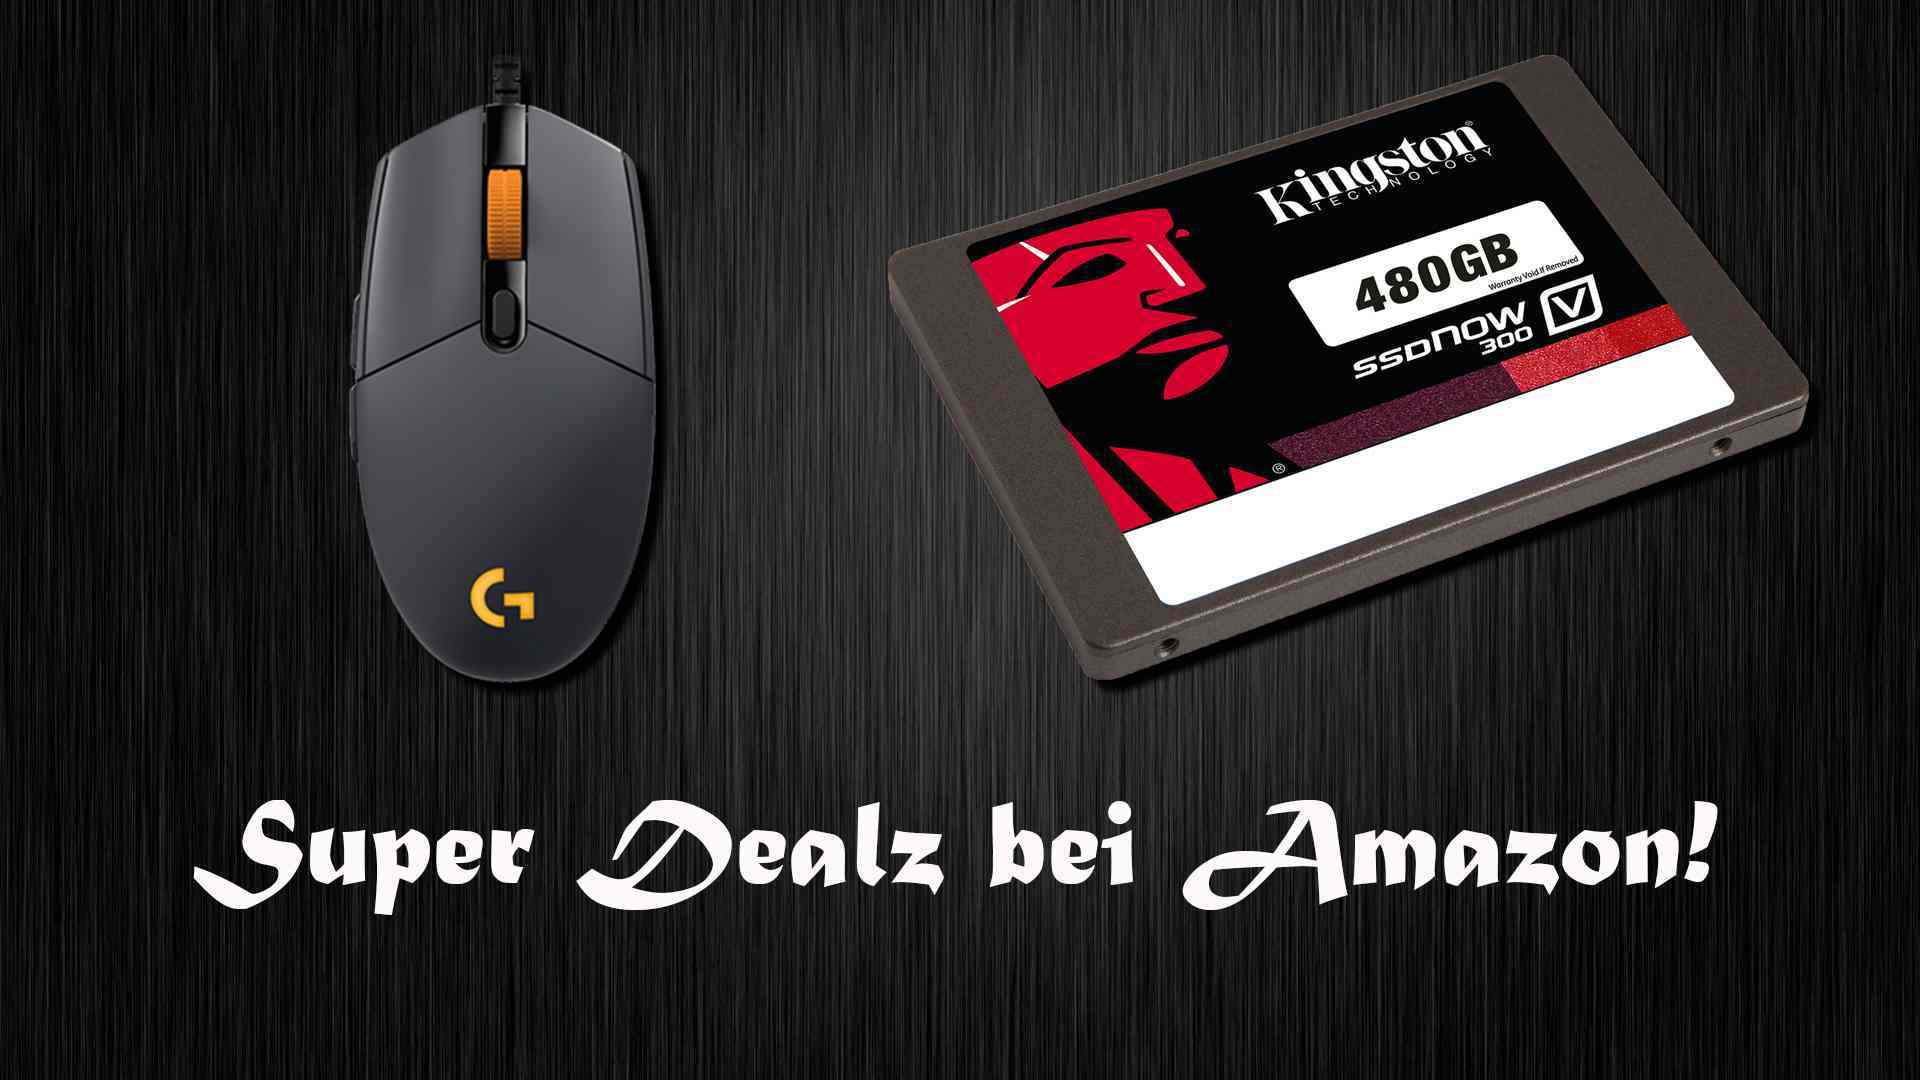 Amazon Angebote: Logitech G Pro Gaming-Maus BF1 Eidtion (WHD-Deal), Kingston SSD (480GB)